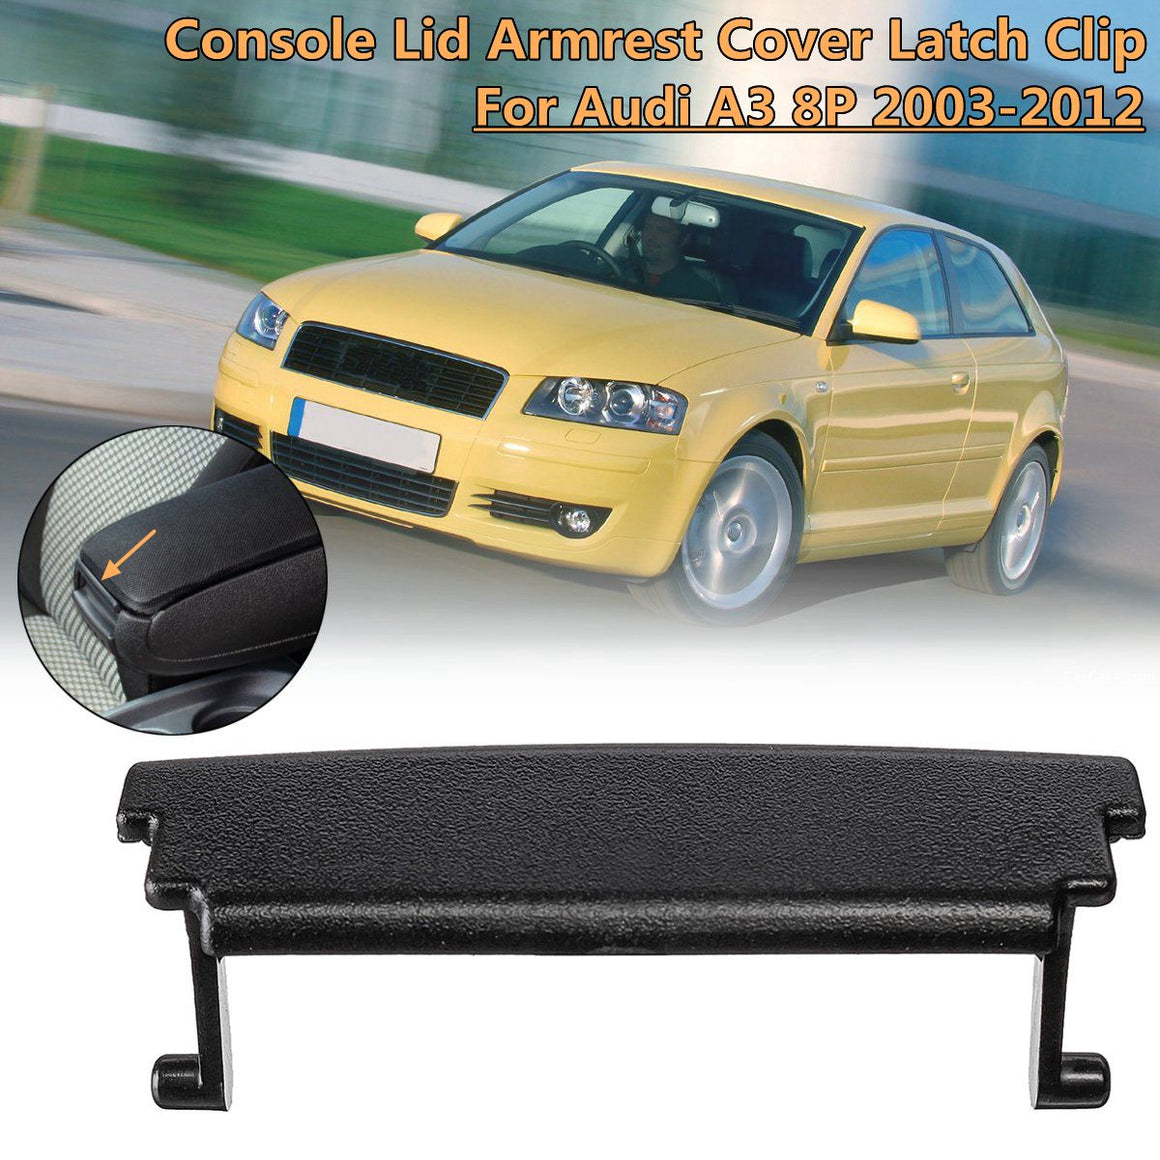 Center Console Armrest Cover Latch Clip Cover Latch Clip Catch For Audi A3 8P 2003 2004 2005 2006 2007~2012